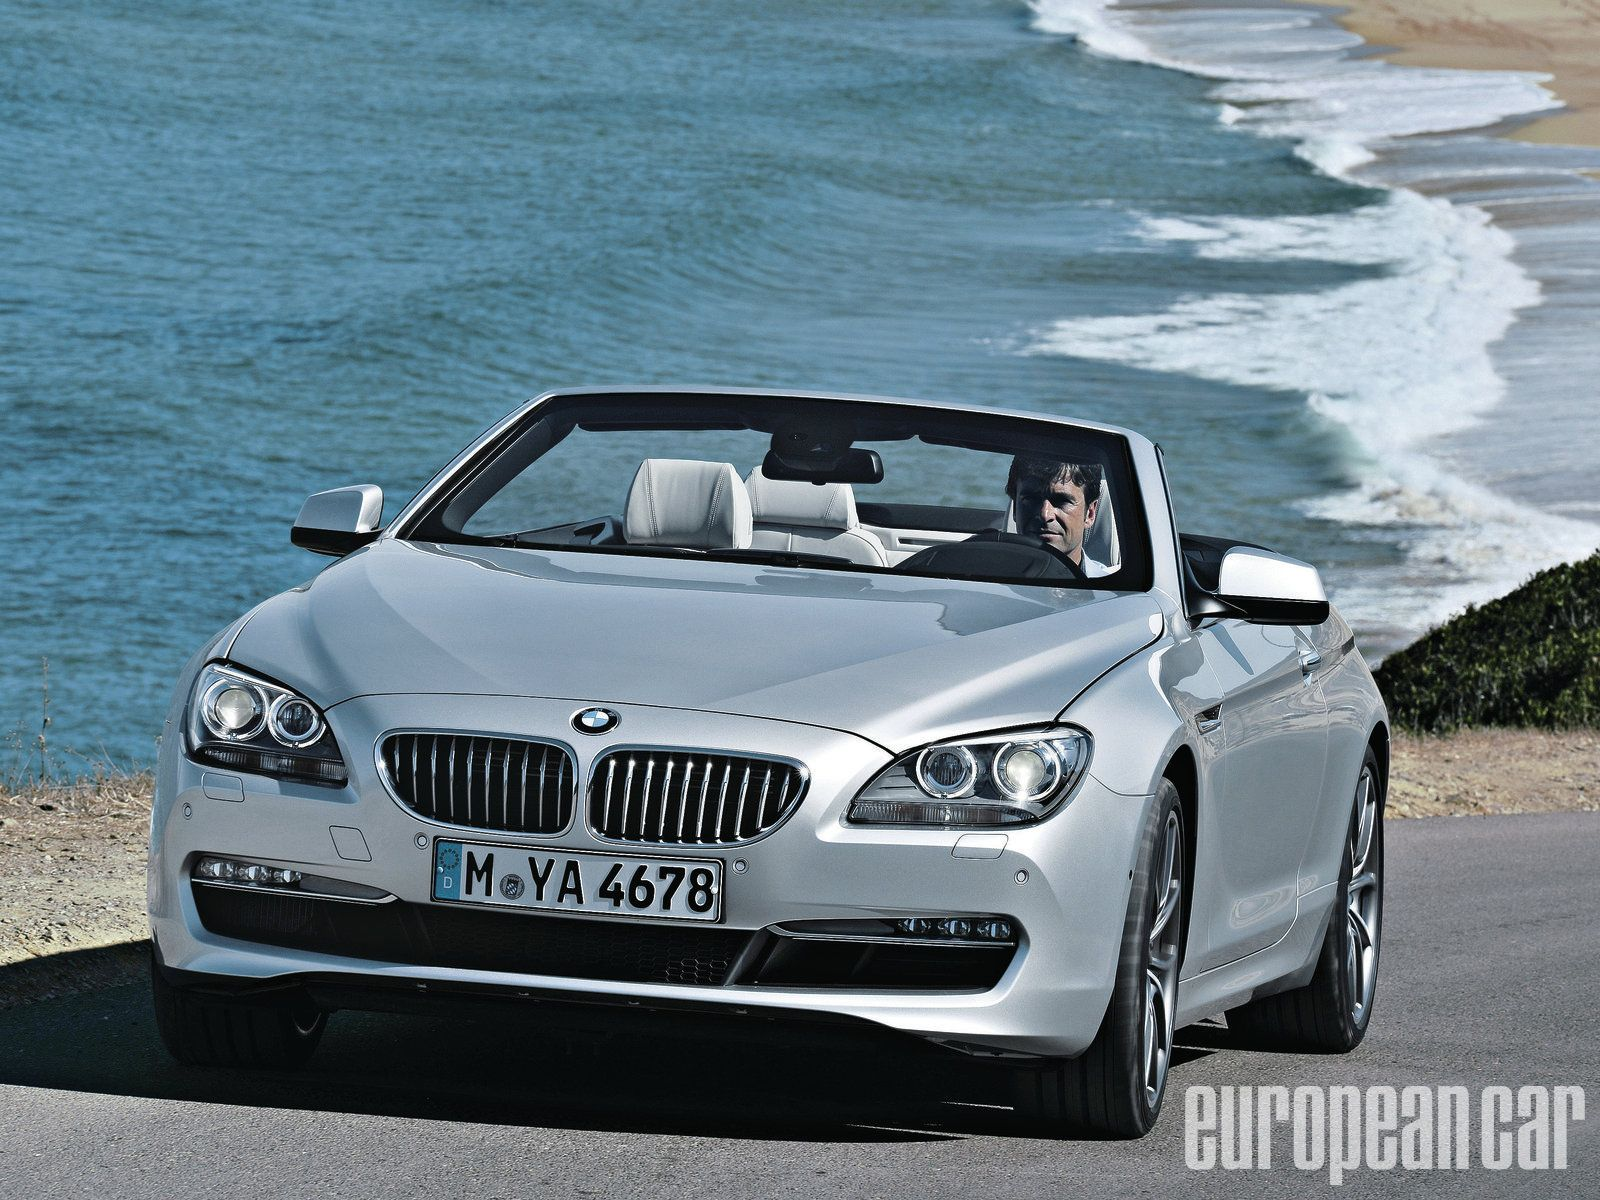 2018 BMW 6 Series Convertible photo - 3